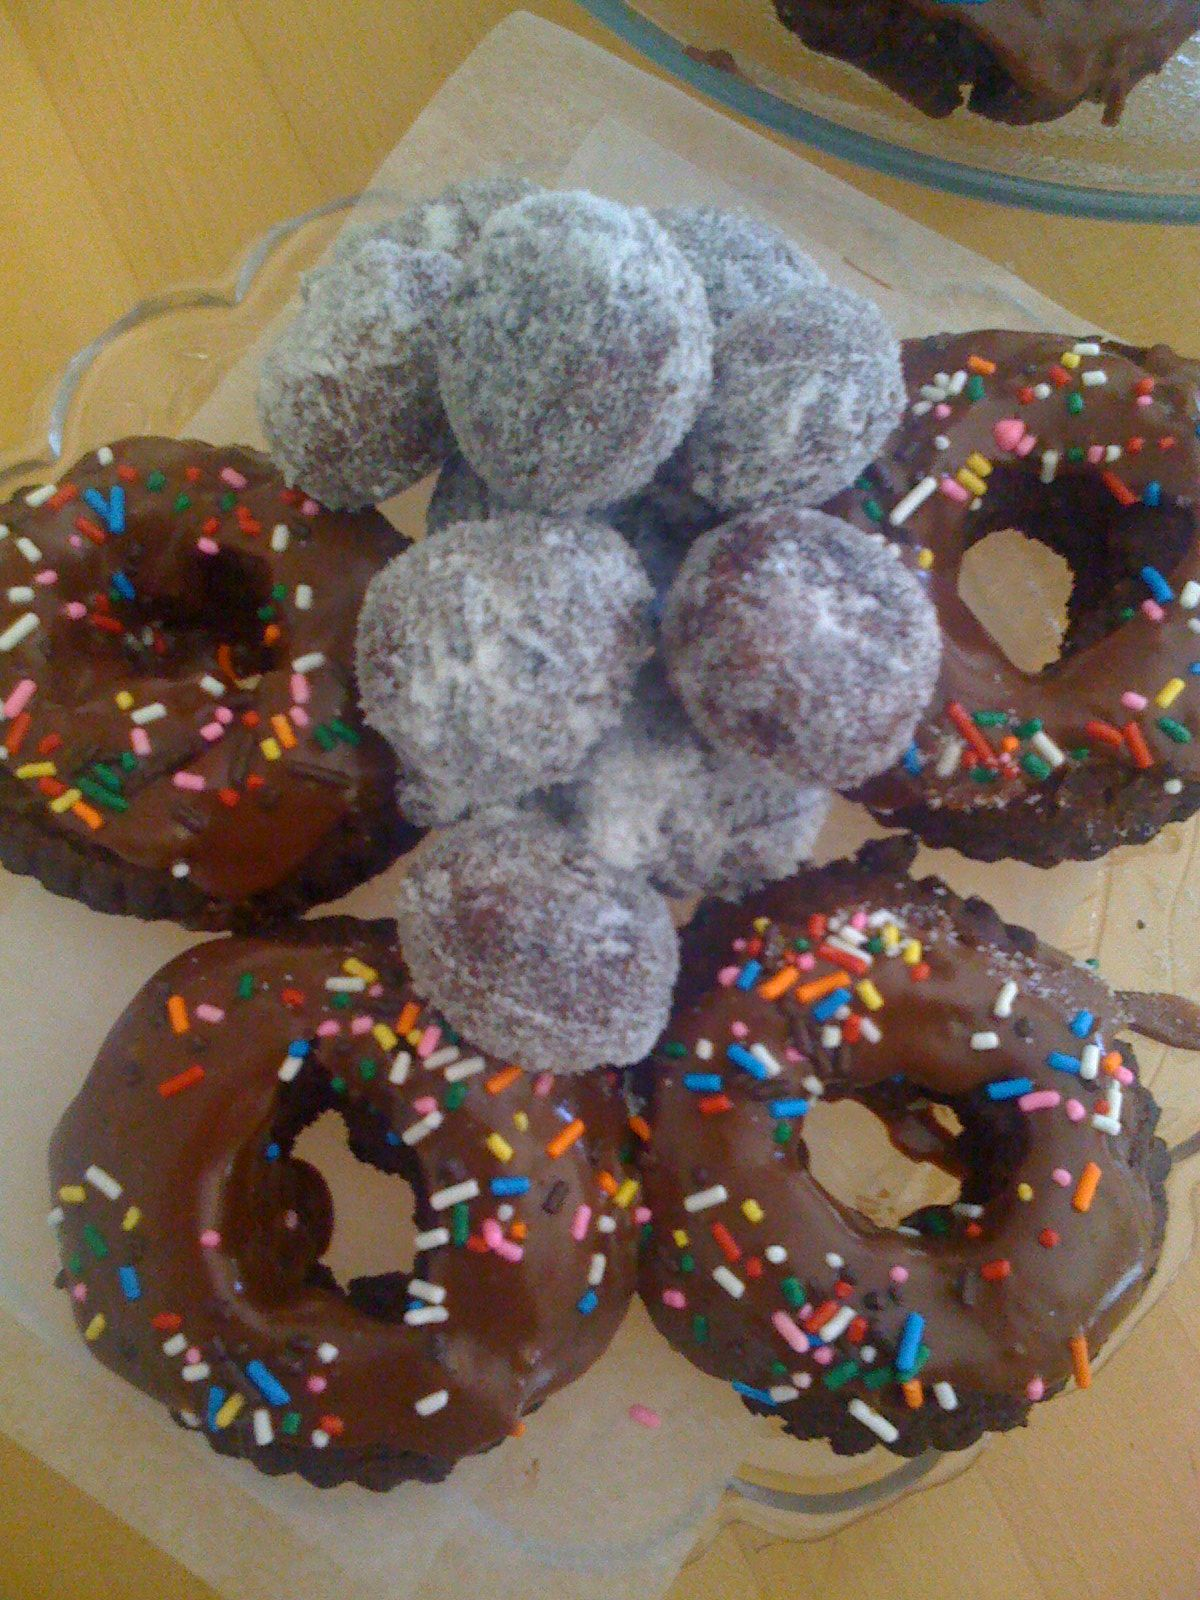 For the love of home made donuts!